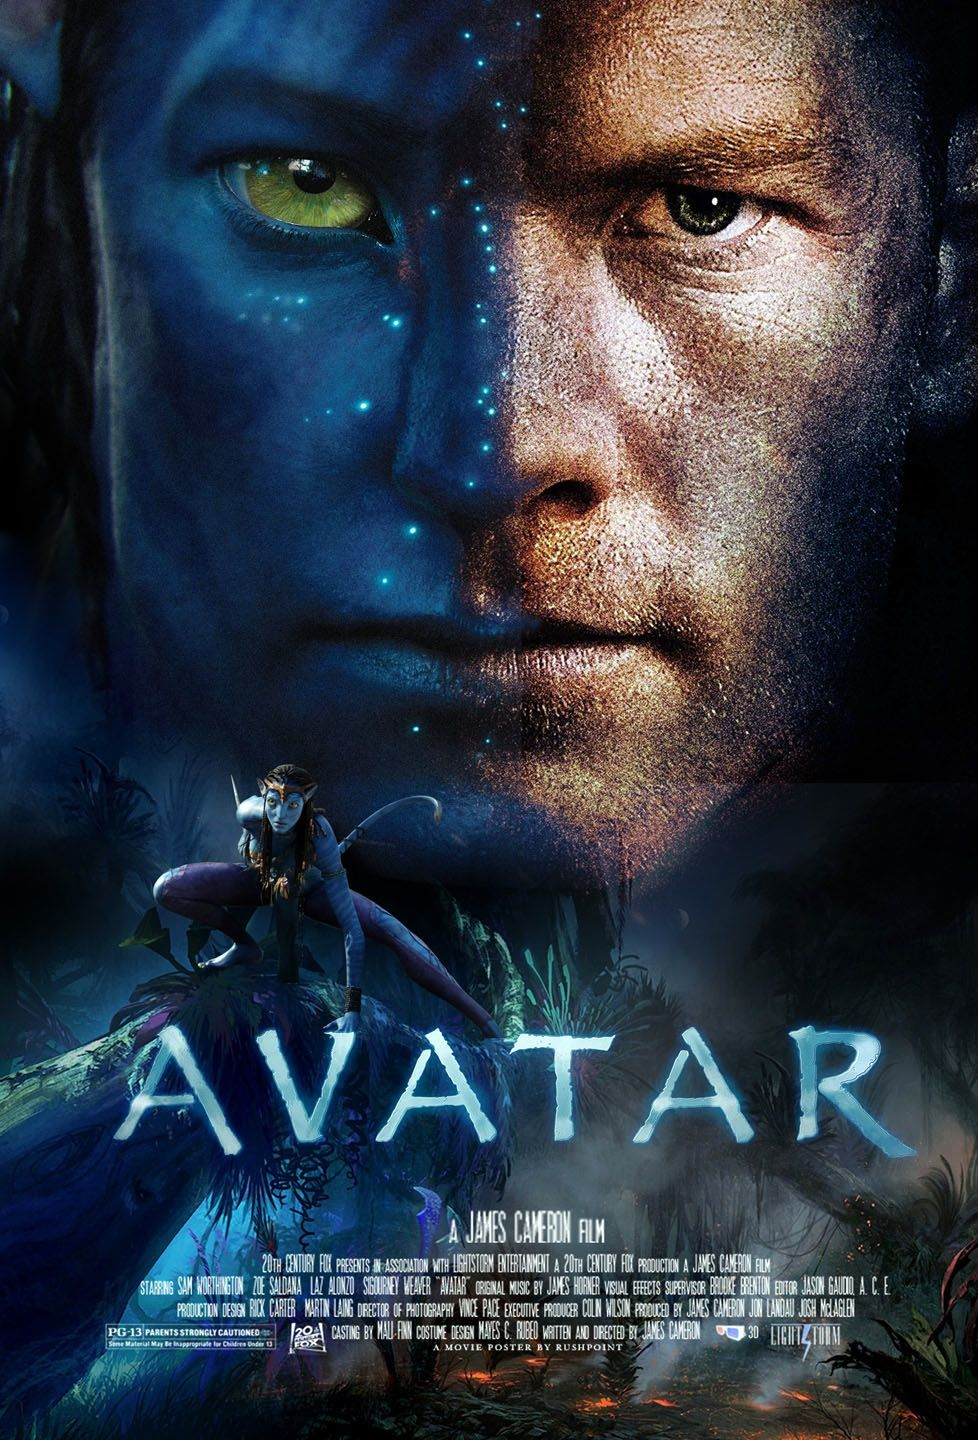 avatar 2009 | avatar (2009) extended bluray 720p mkv | free